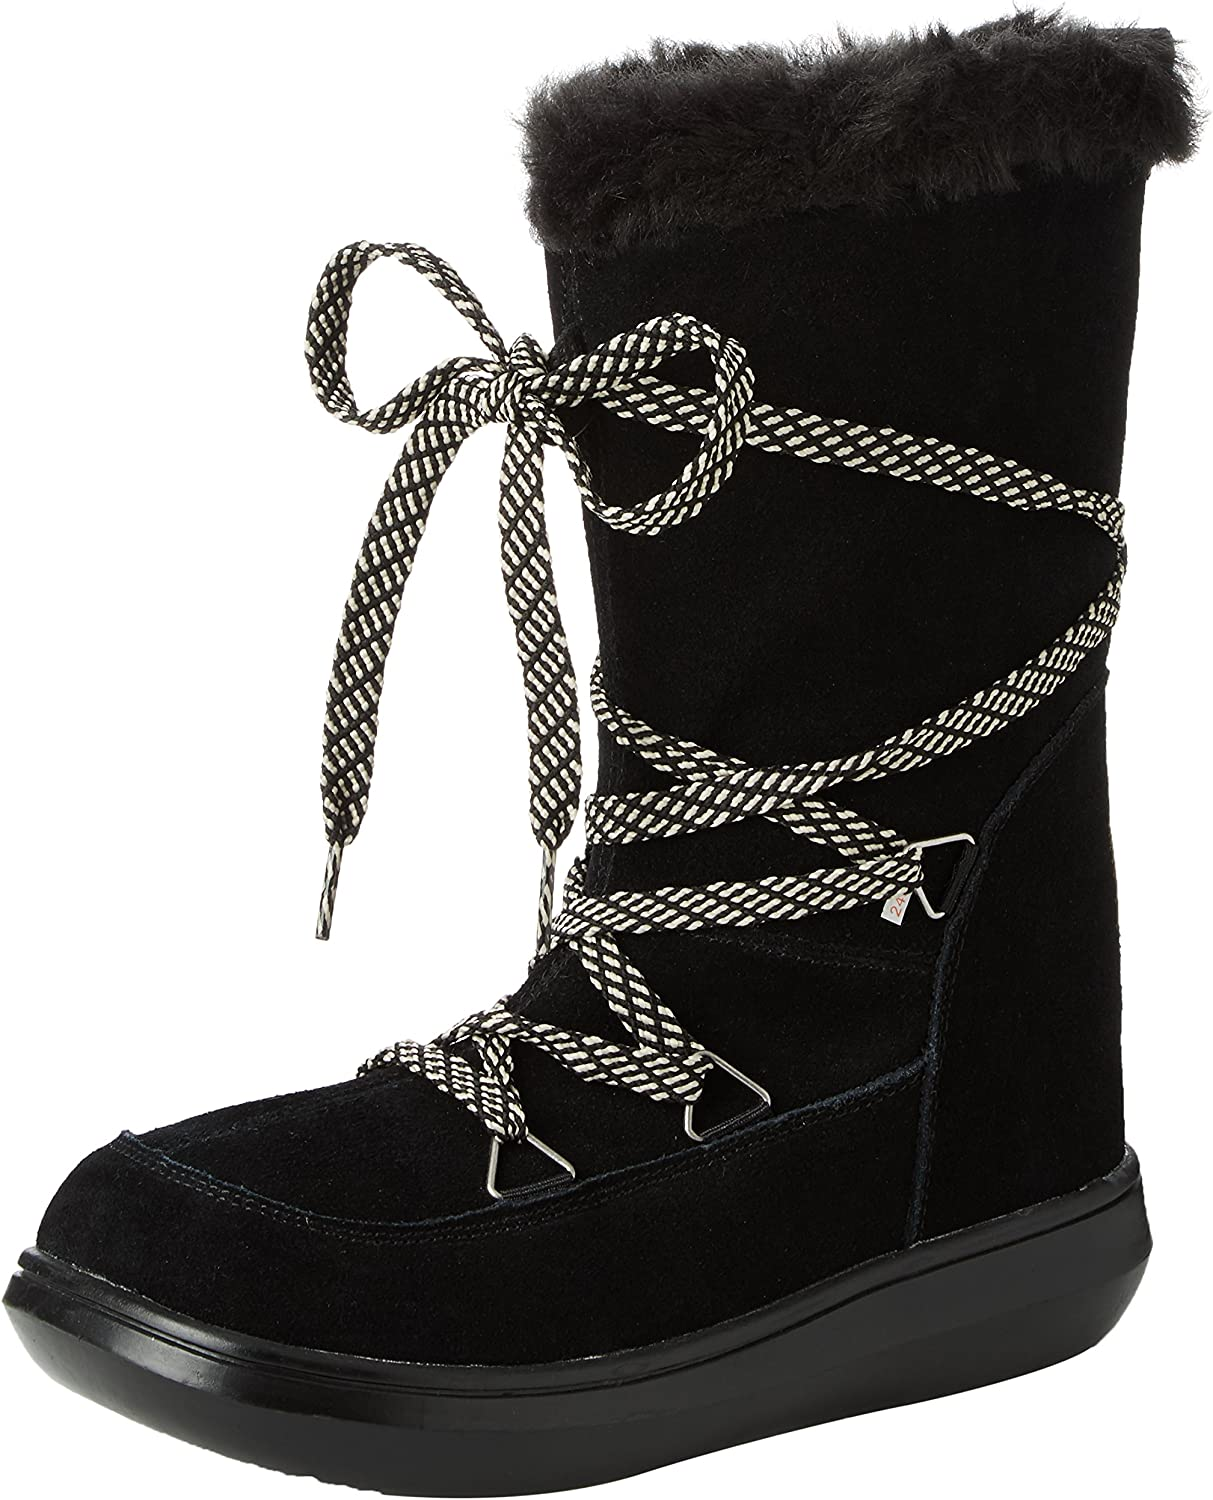 Rocket Dog Snowcrushed Womens Suede Snow Boots